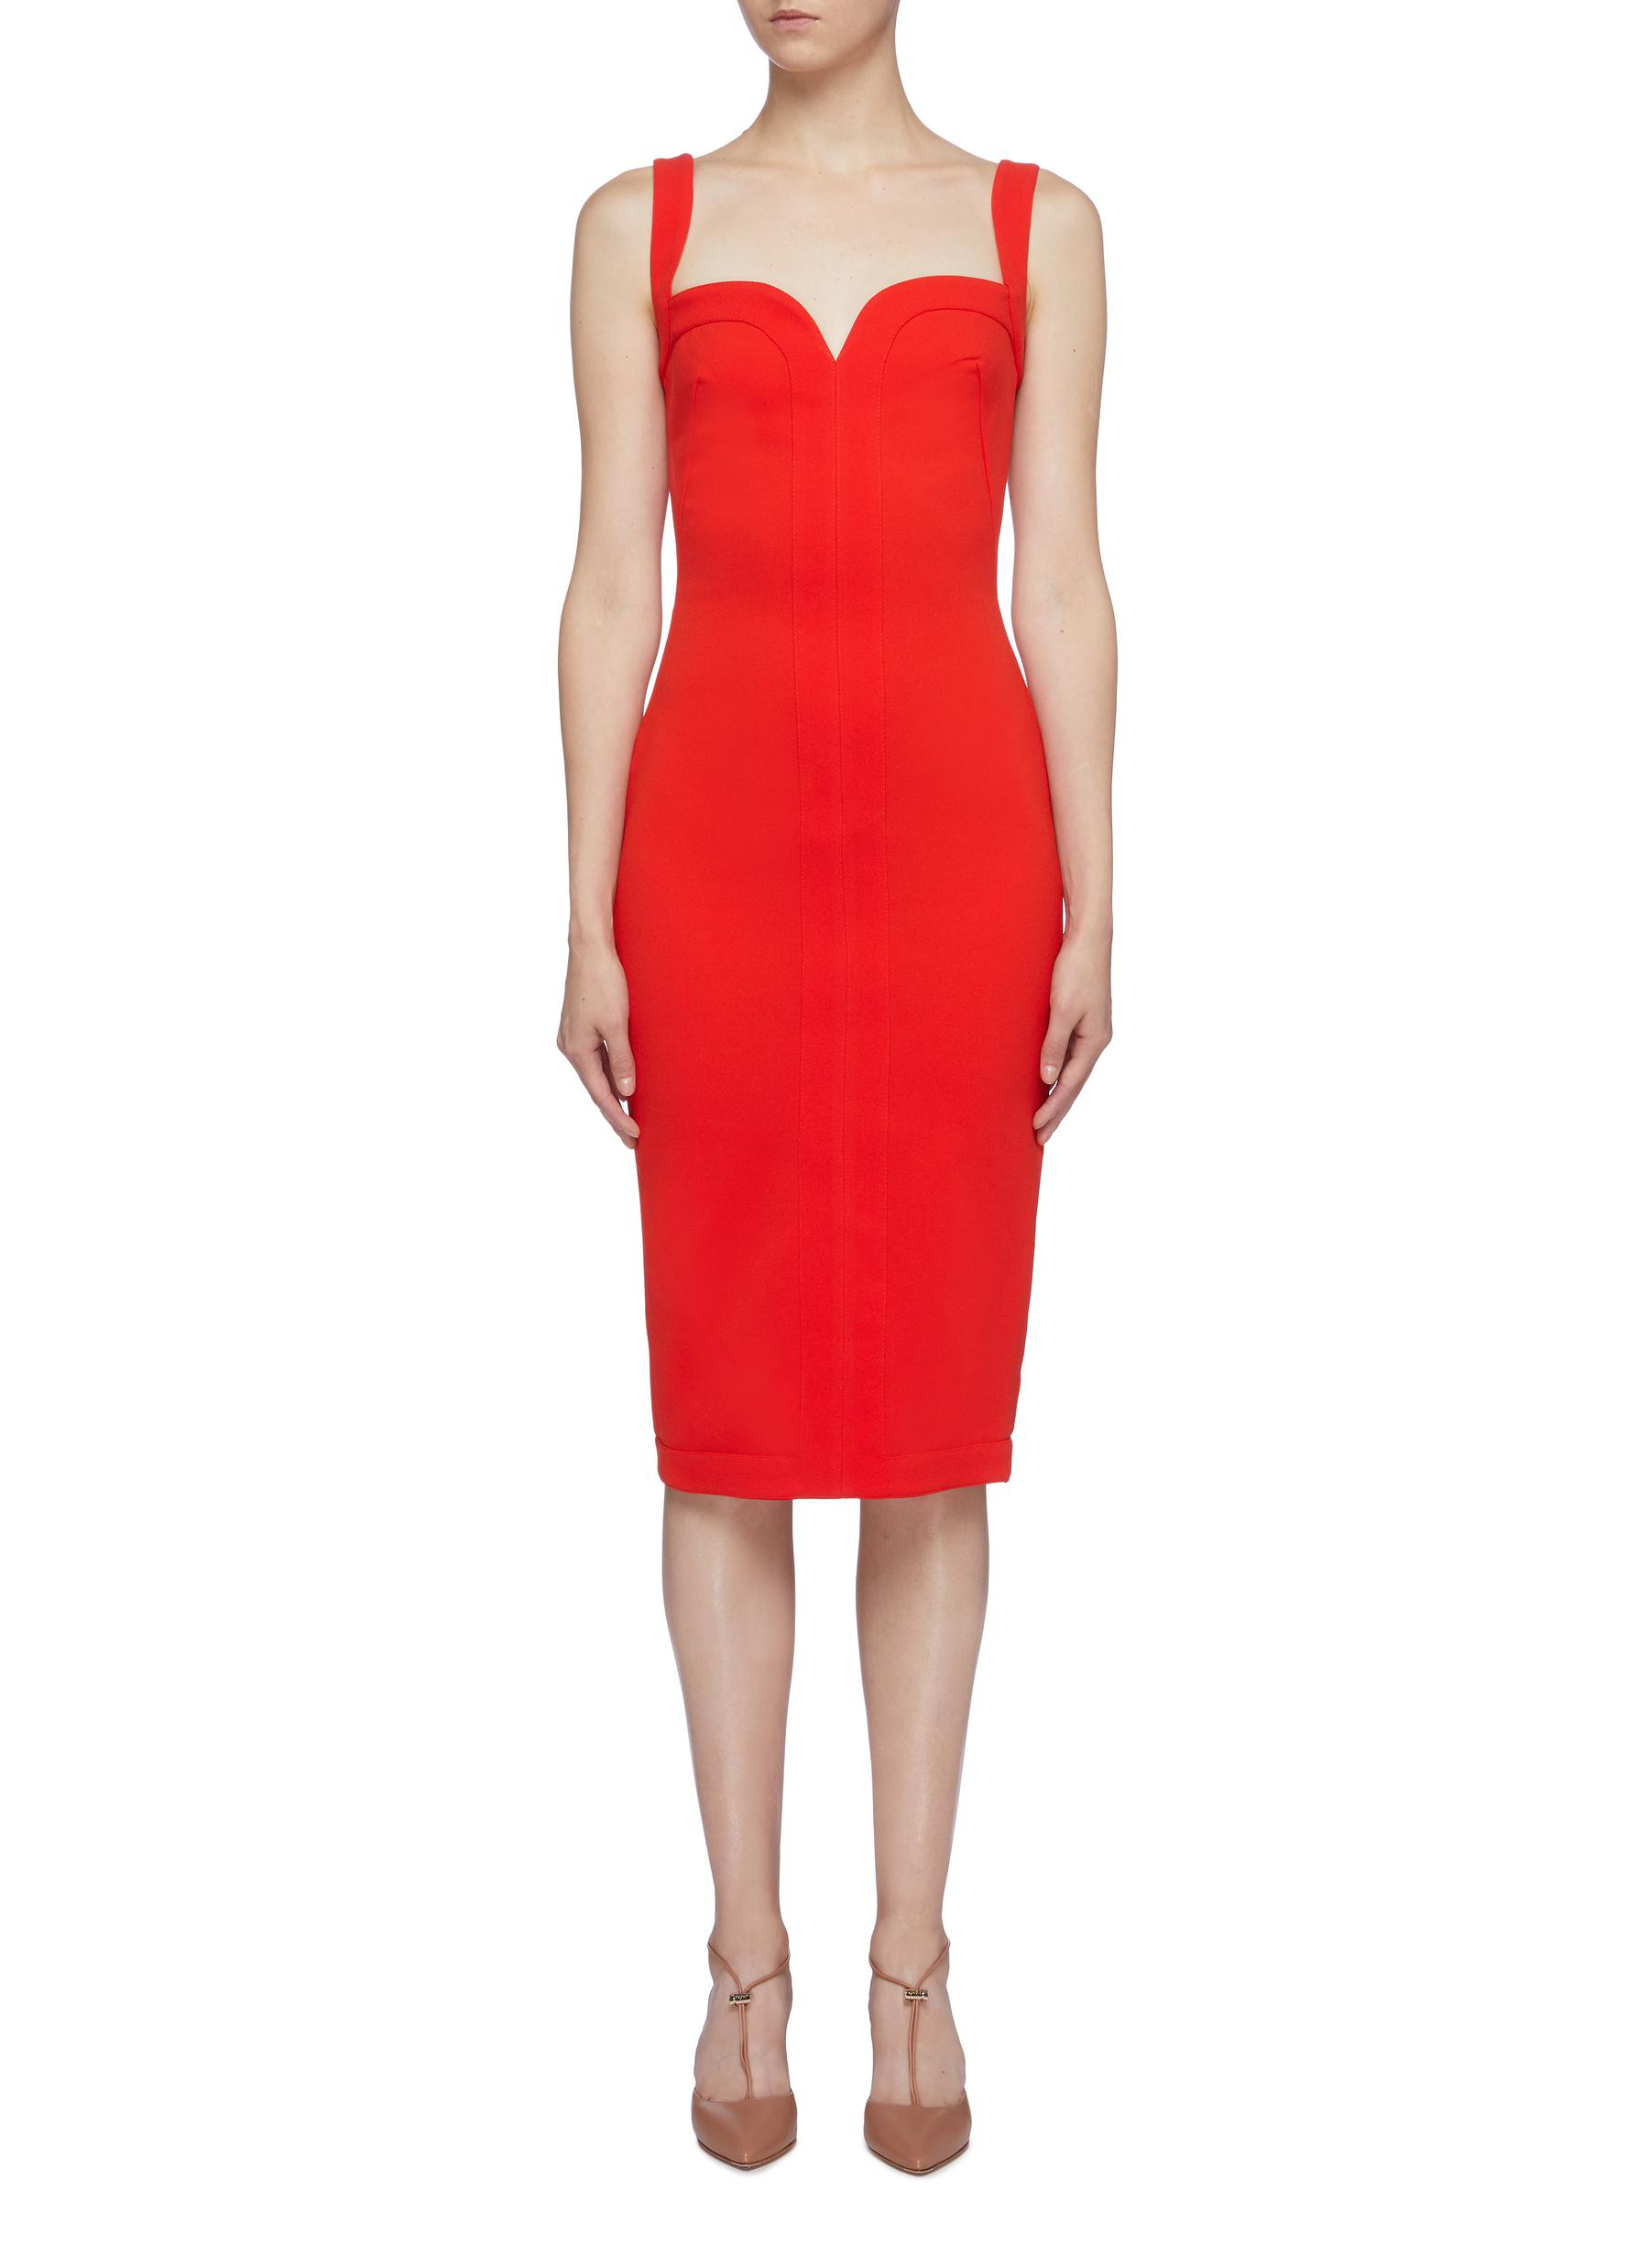 Sweetheart neckline sleeveless crepe dress by Victoria Beckham